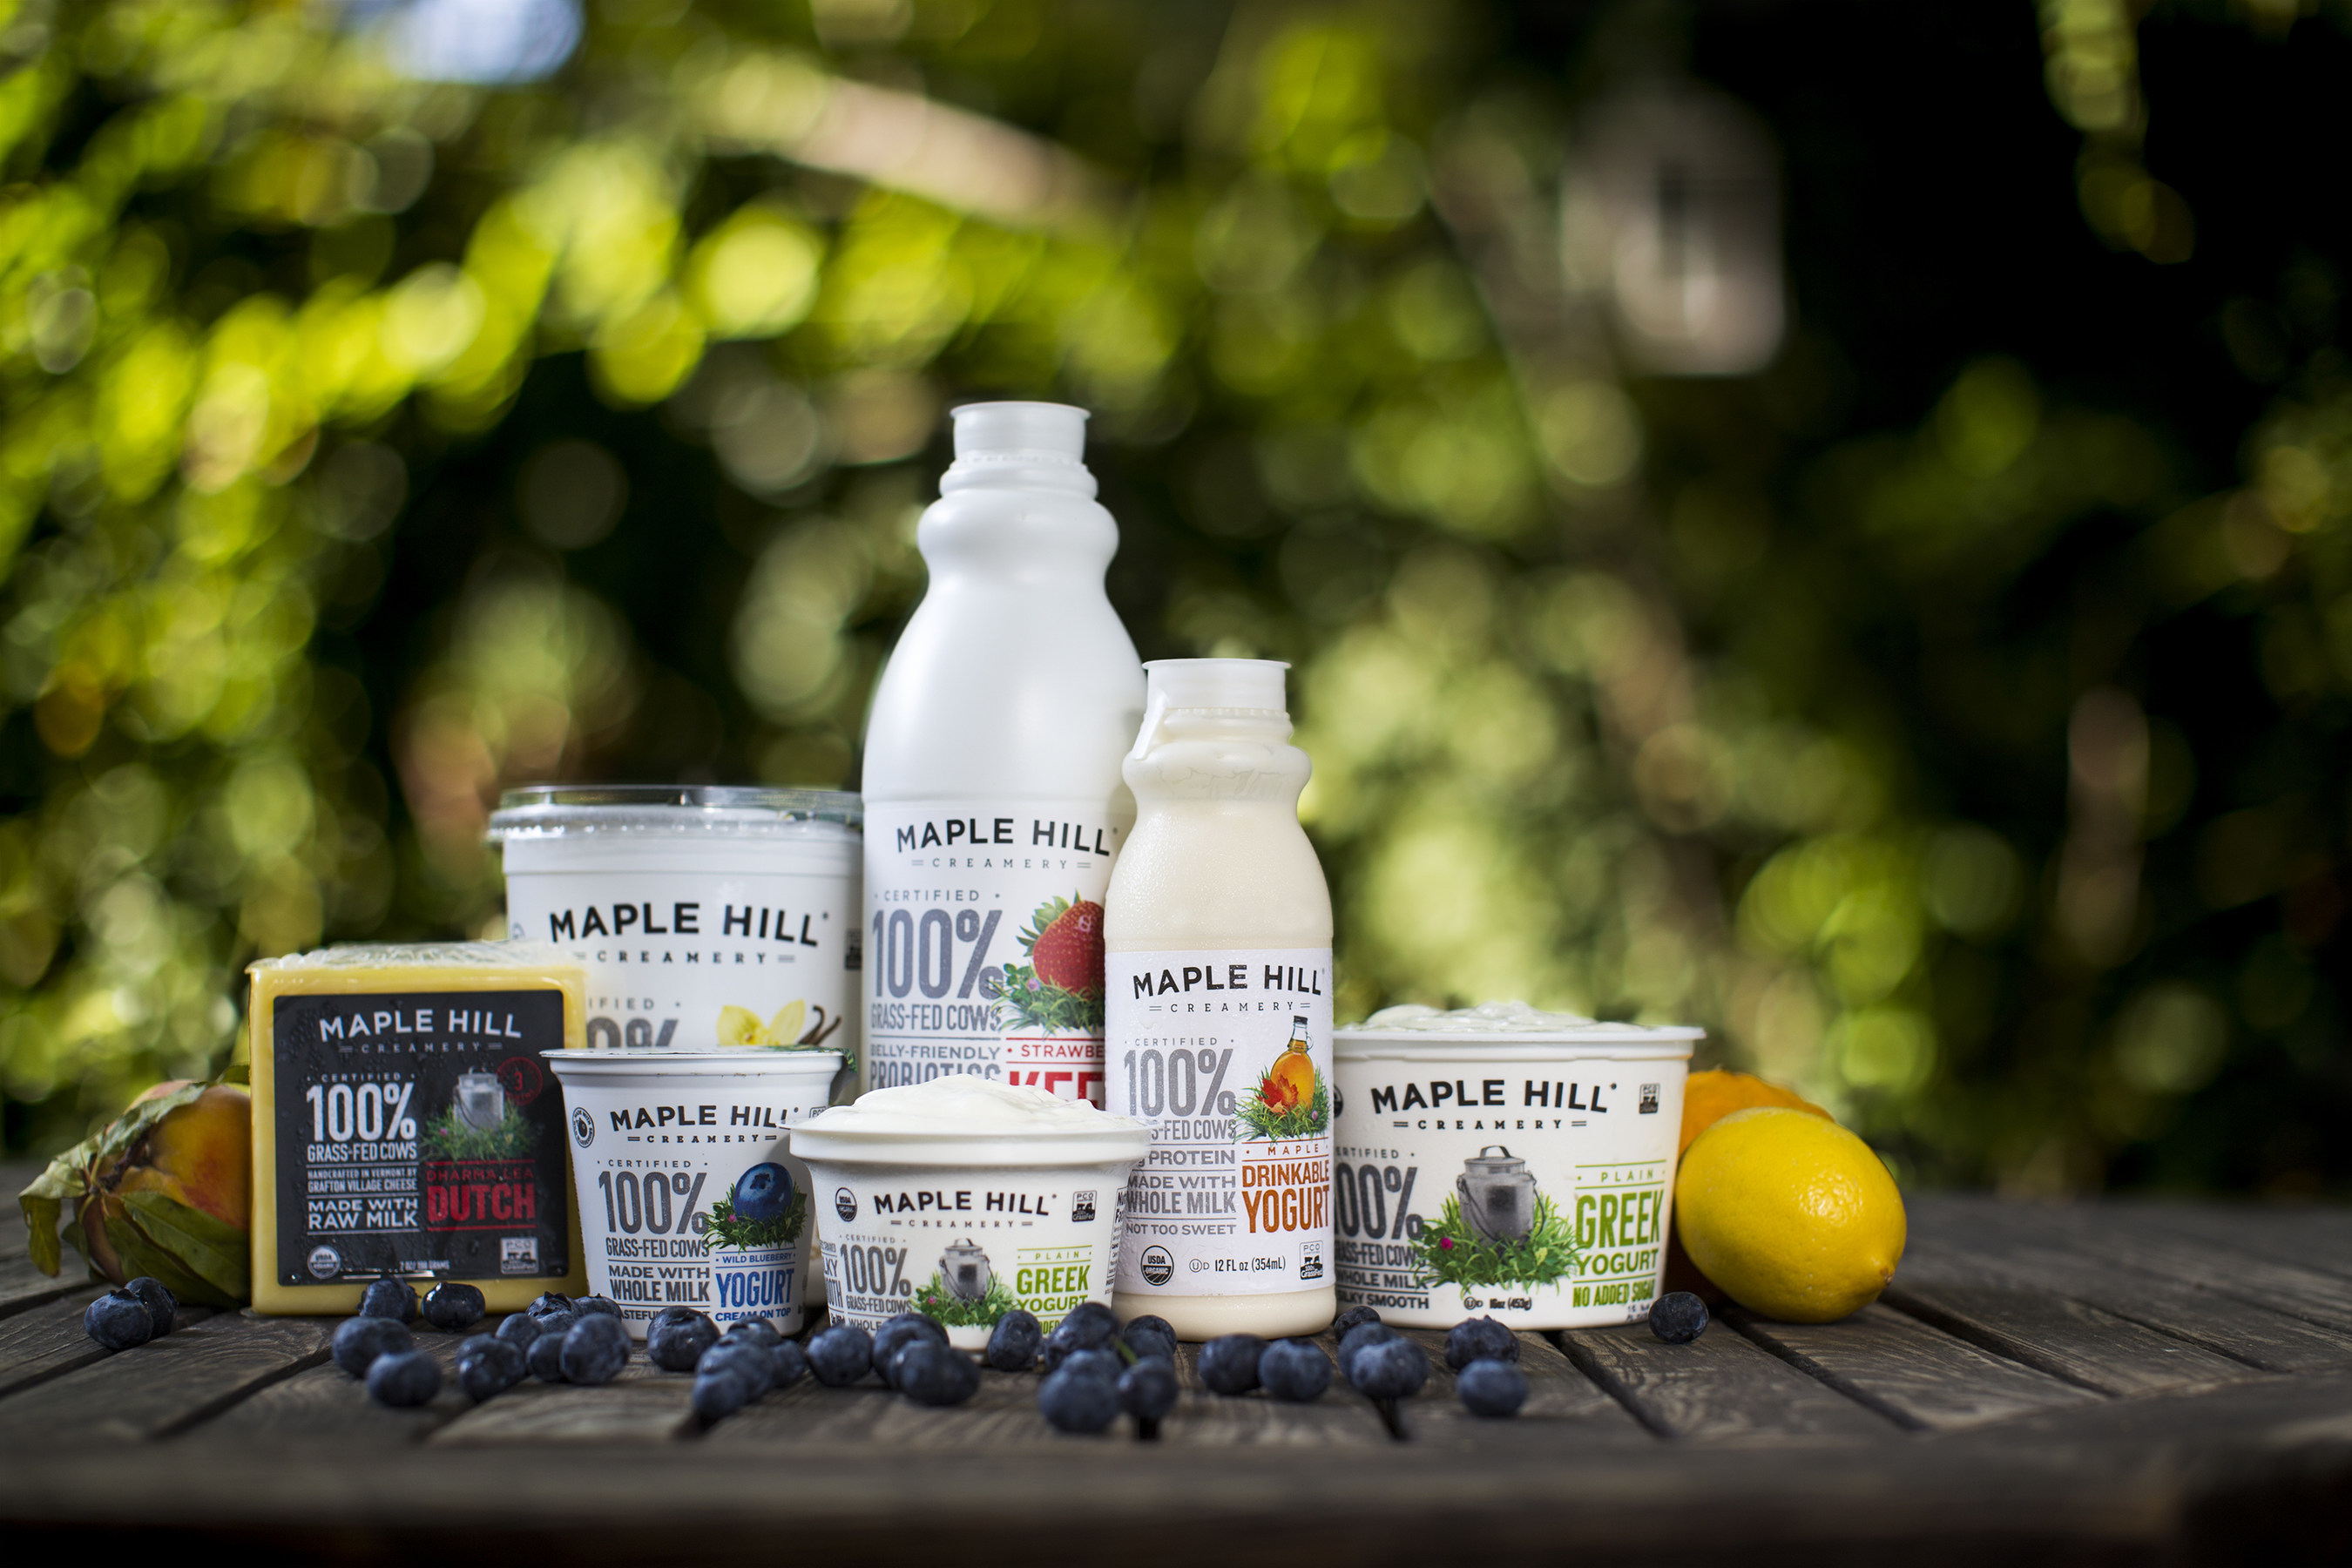 Maple Hill Creamery debuts new logo and product packaging that elevates their 100% Grass-Fed Dairy messaging